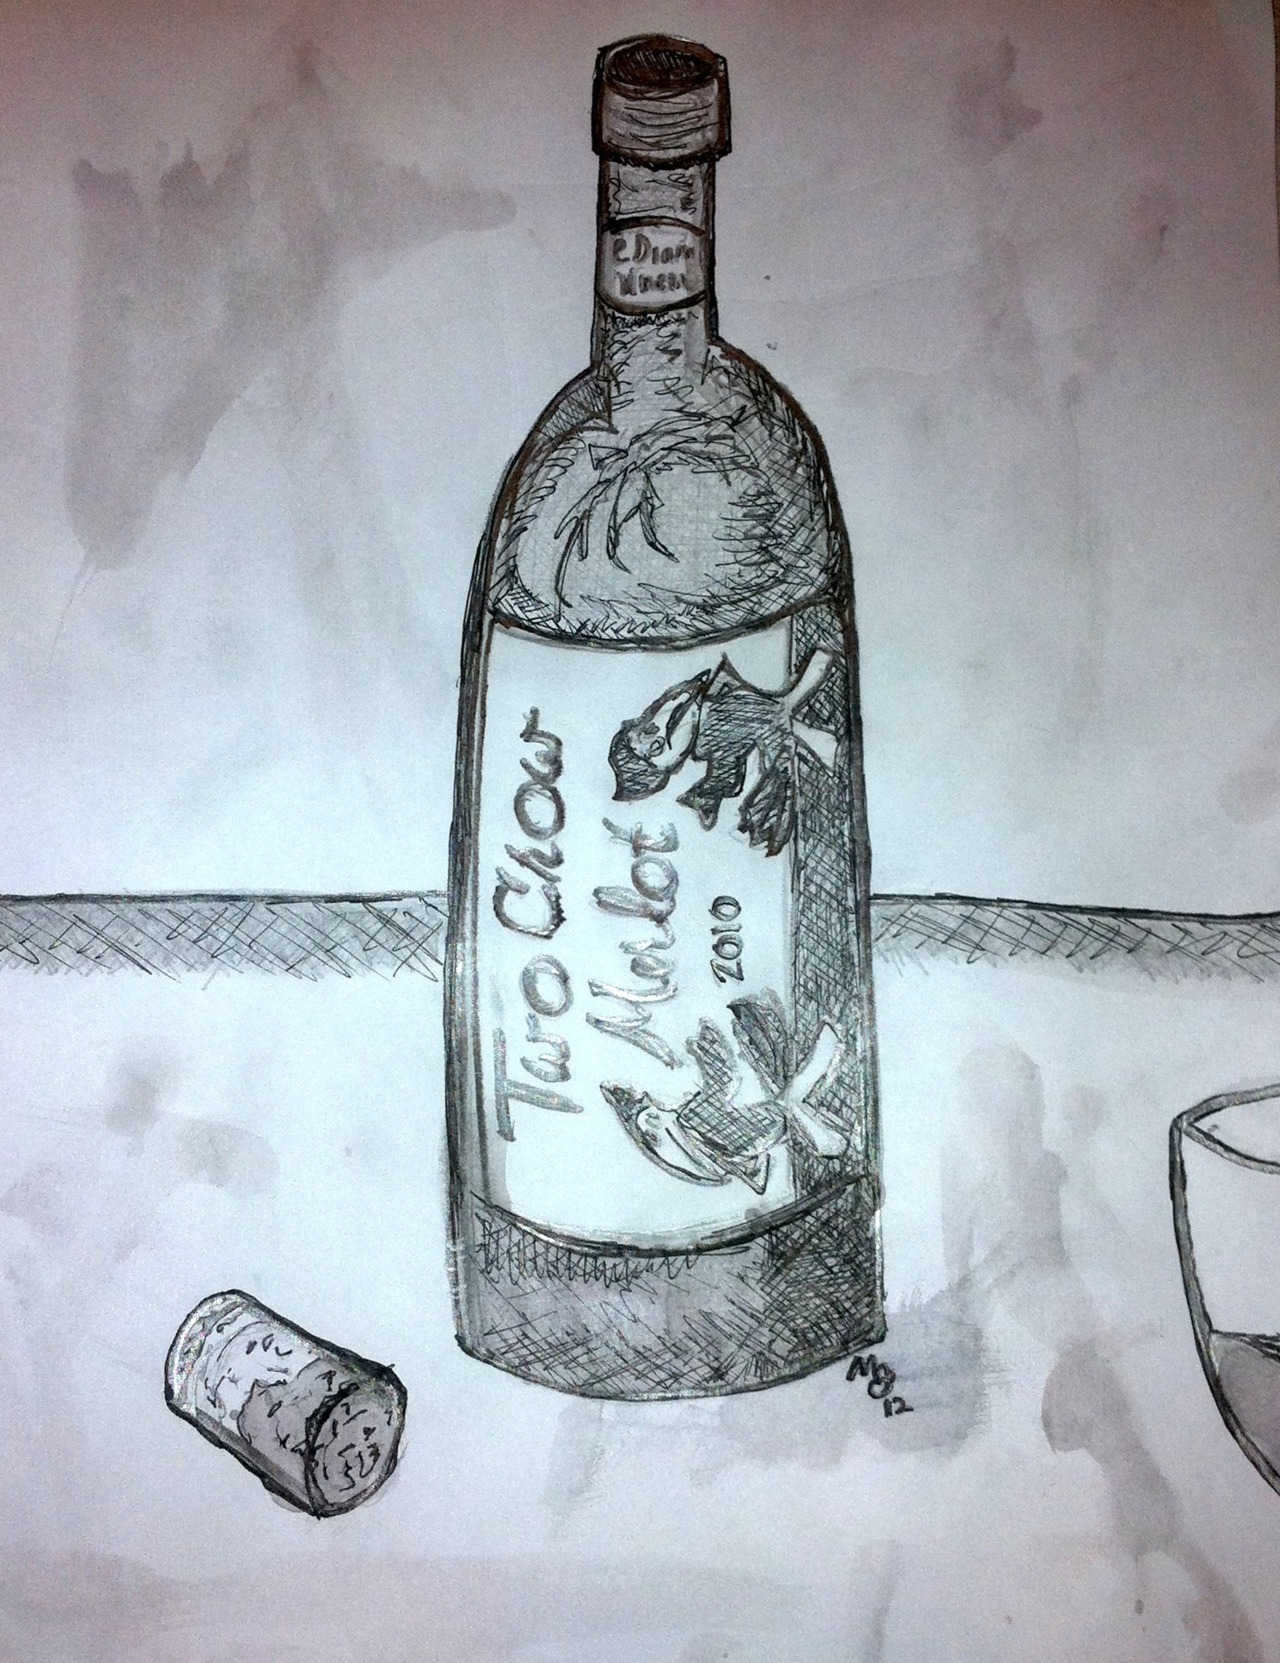 Two Crow Merlot Pencil, Pen, Wine When visiting Dustin and Erica recently I had some of her father's wine and I sketched it.  I used wine to shade and color the cork, lower part of the bottle, and the wine in the glass.